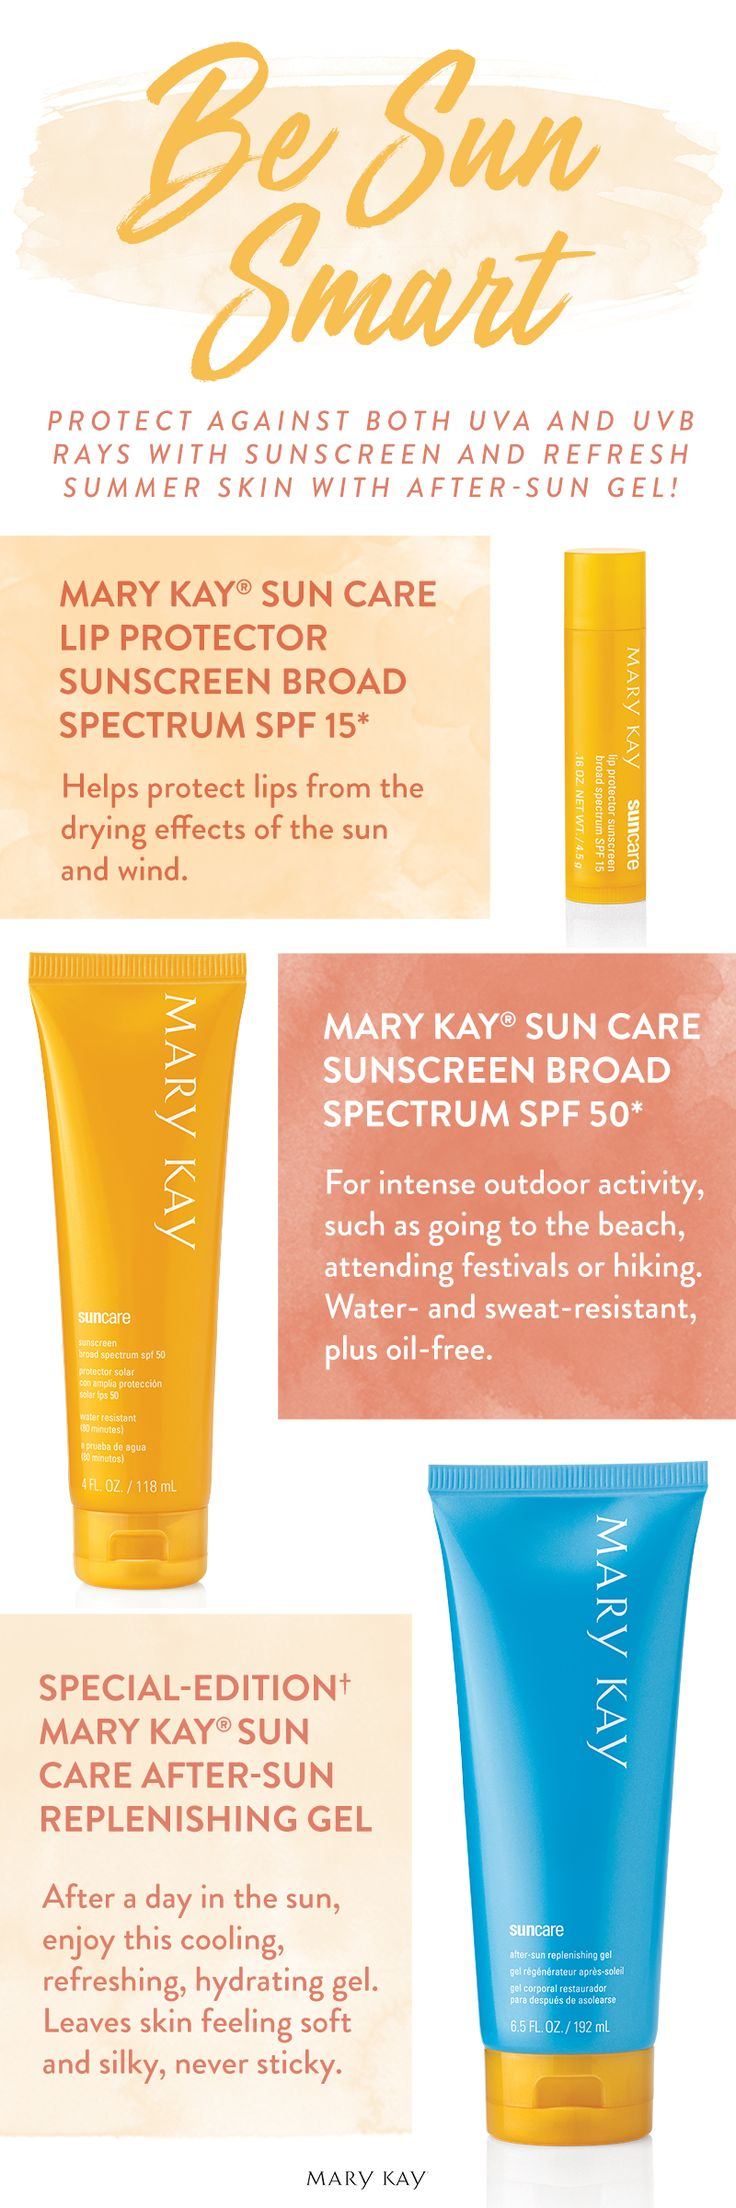 Smart beauties know how to protect against both UVA and UVB rays with sunscreen, and to refresh summer skin with after-sun gel. | Mary Kay